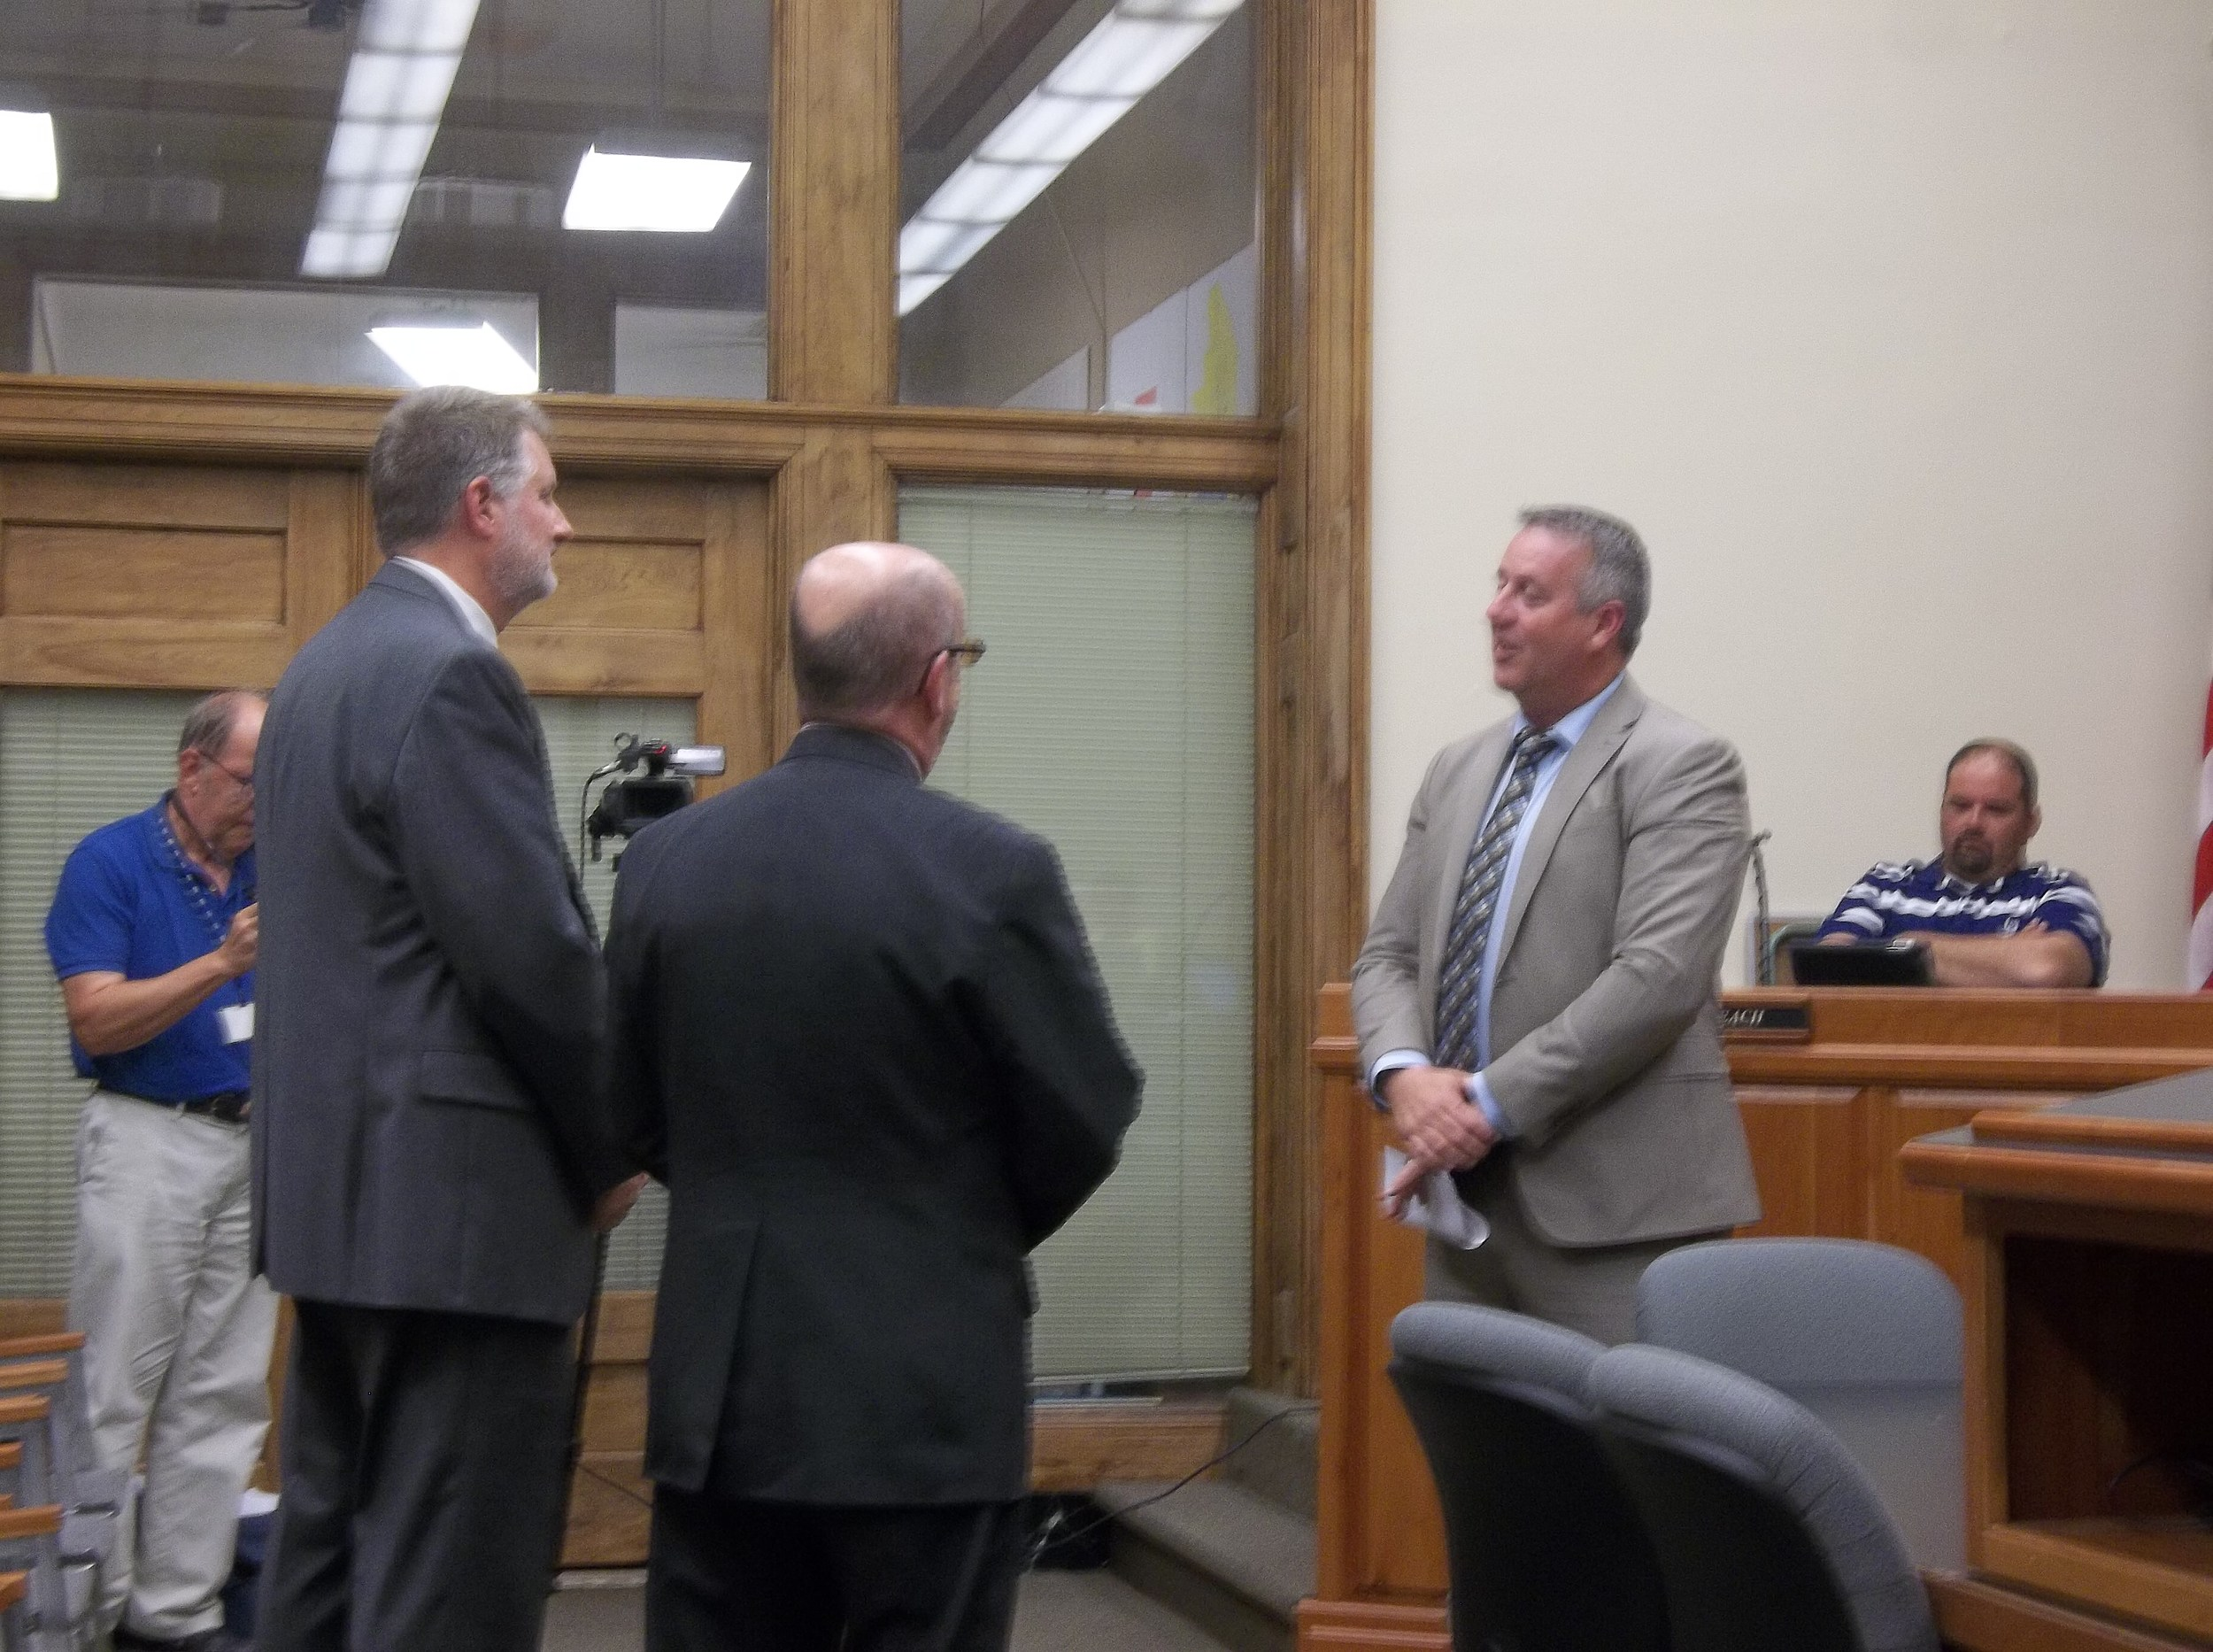 Mayor James Hark speaks to Judicial Candidates Don Bastian, left, and Stephen Porter, right